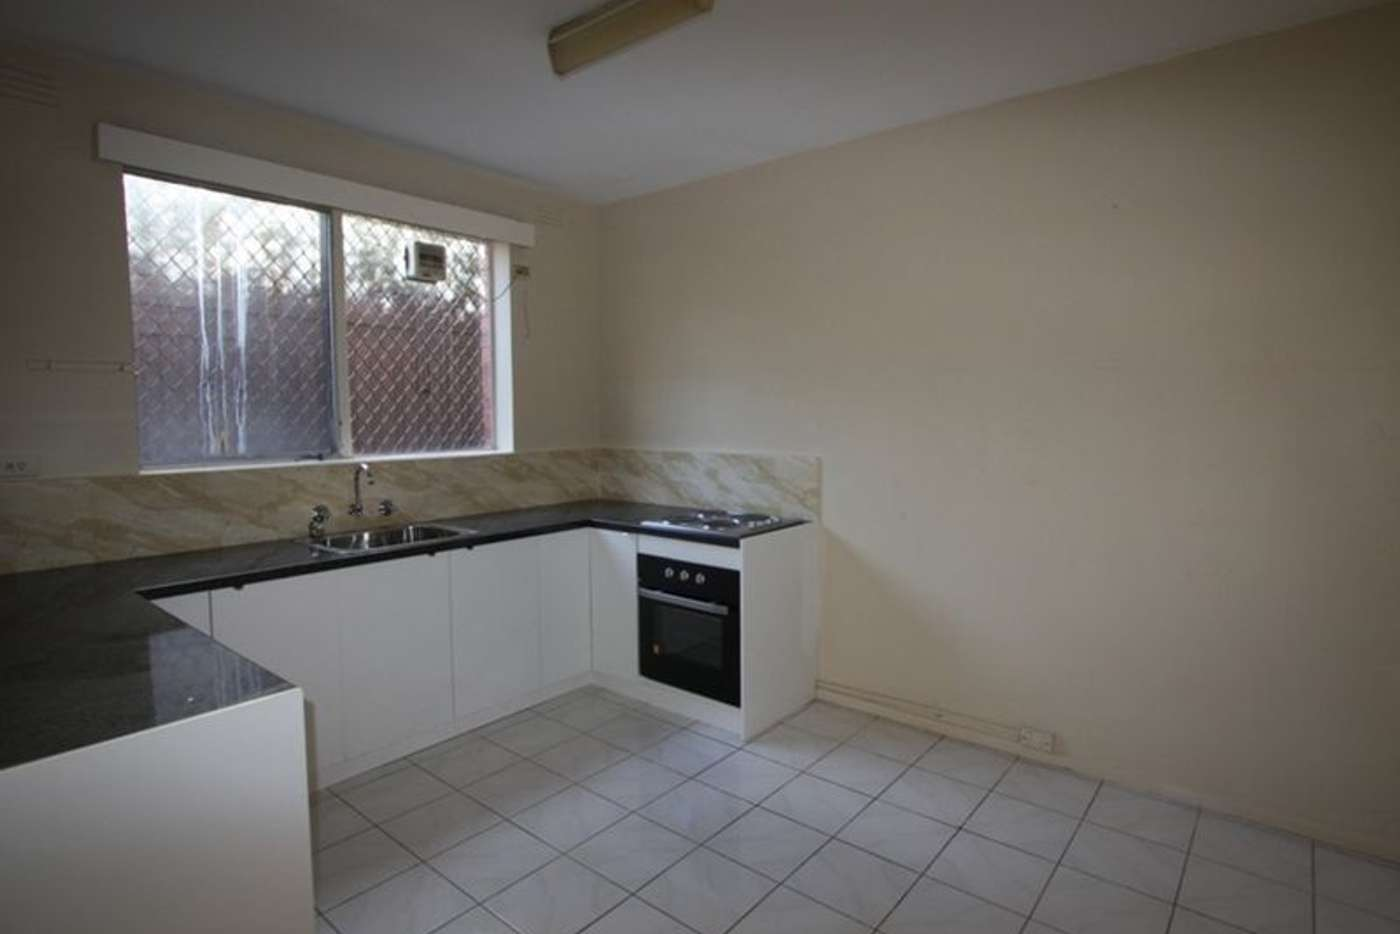 Main view of Homely apartment listing, 3/51 Stephen Street, Yarraville VIC 3013